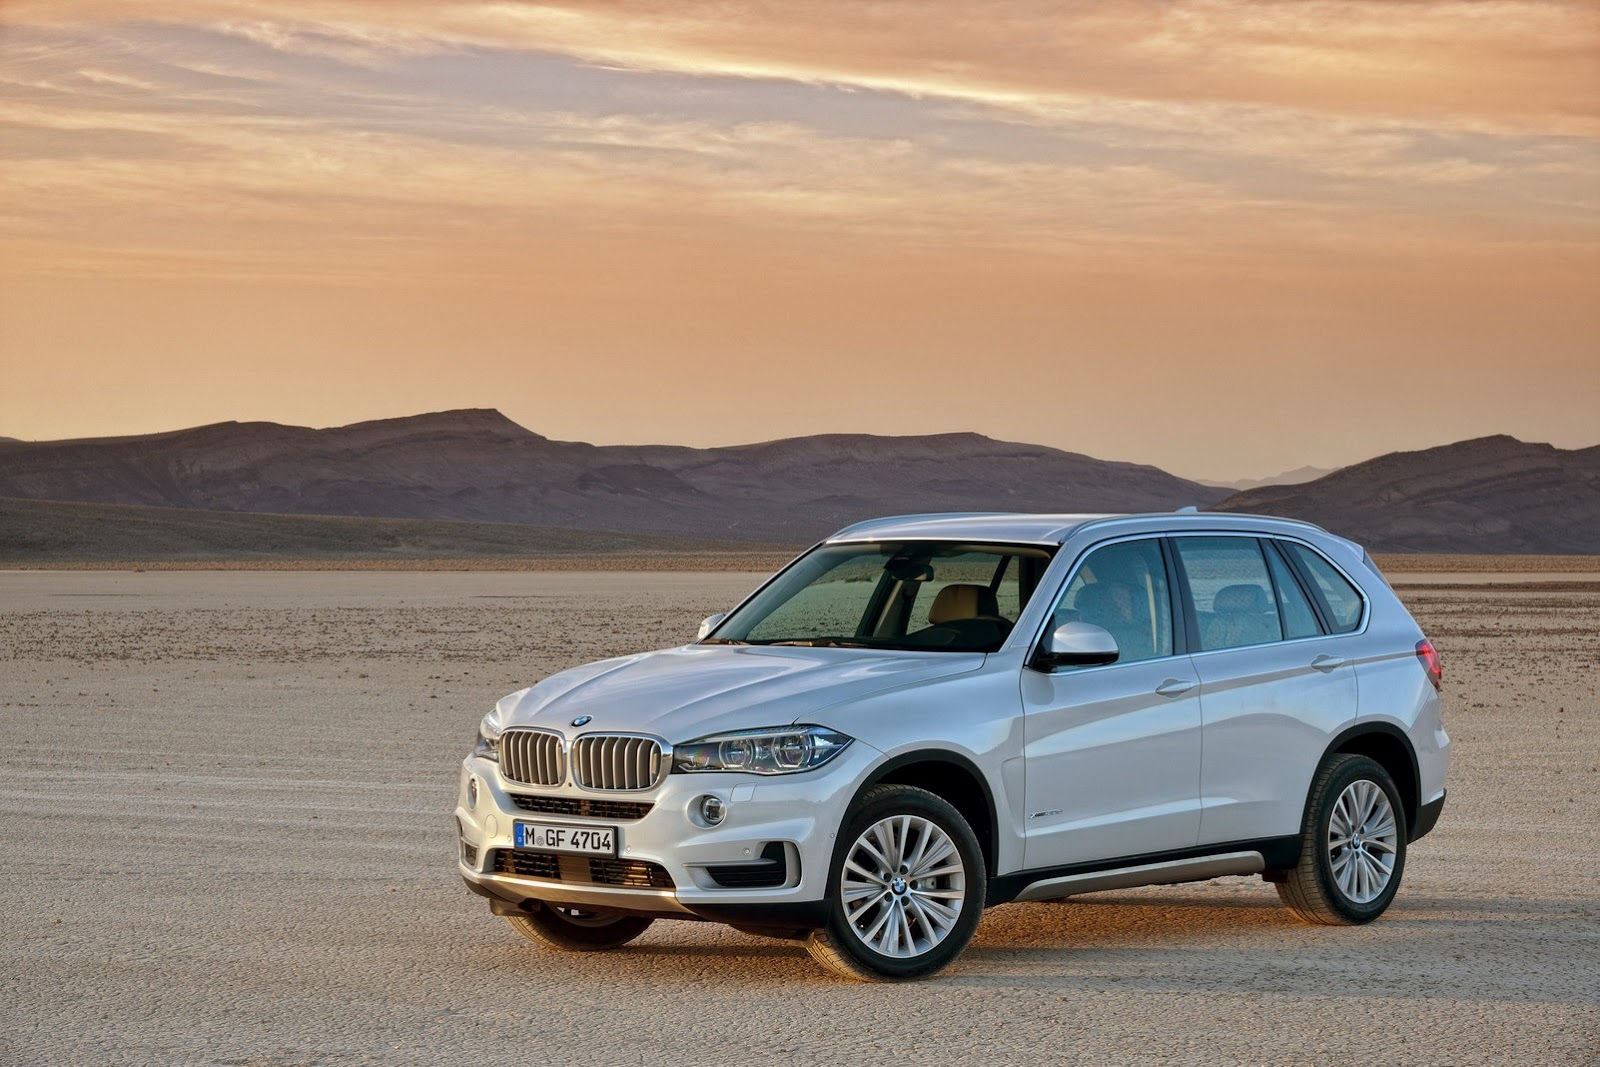 2014 BMW X5 4 2014 BMW X5 Features and details